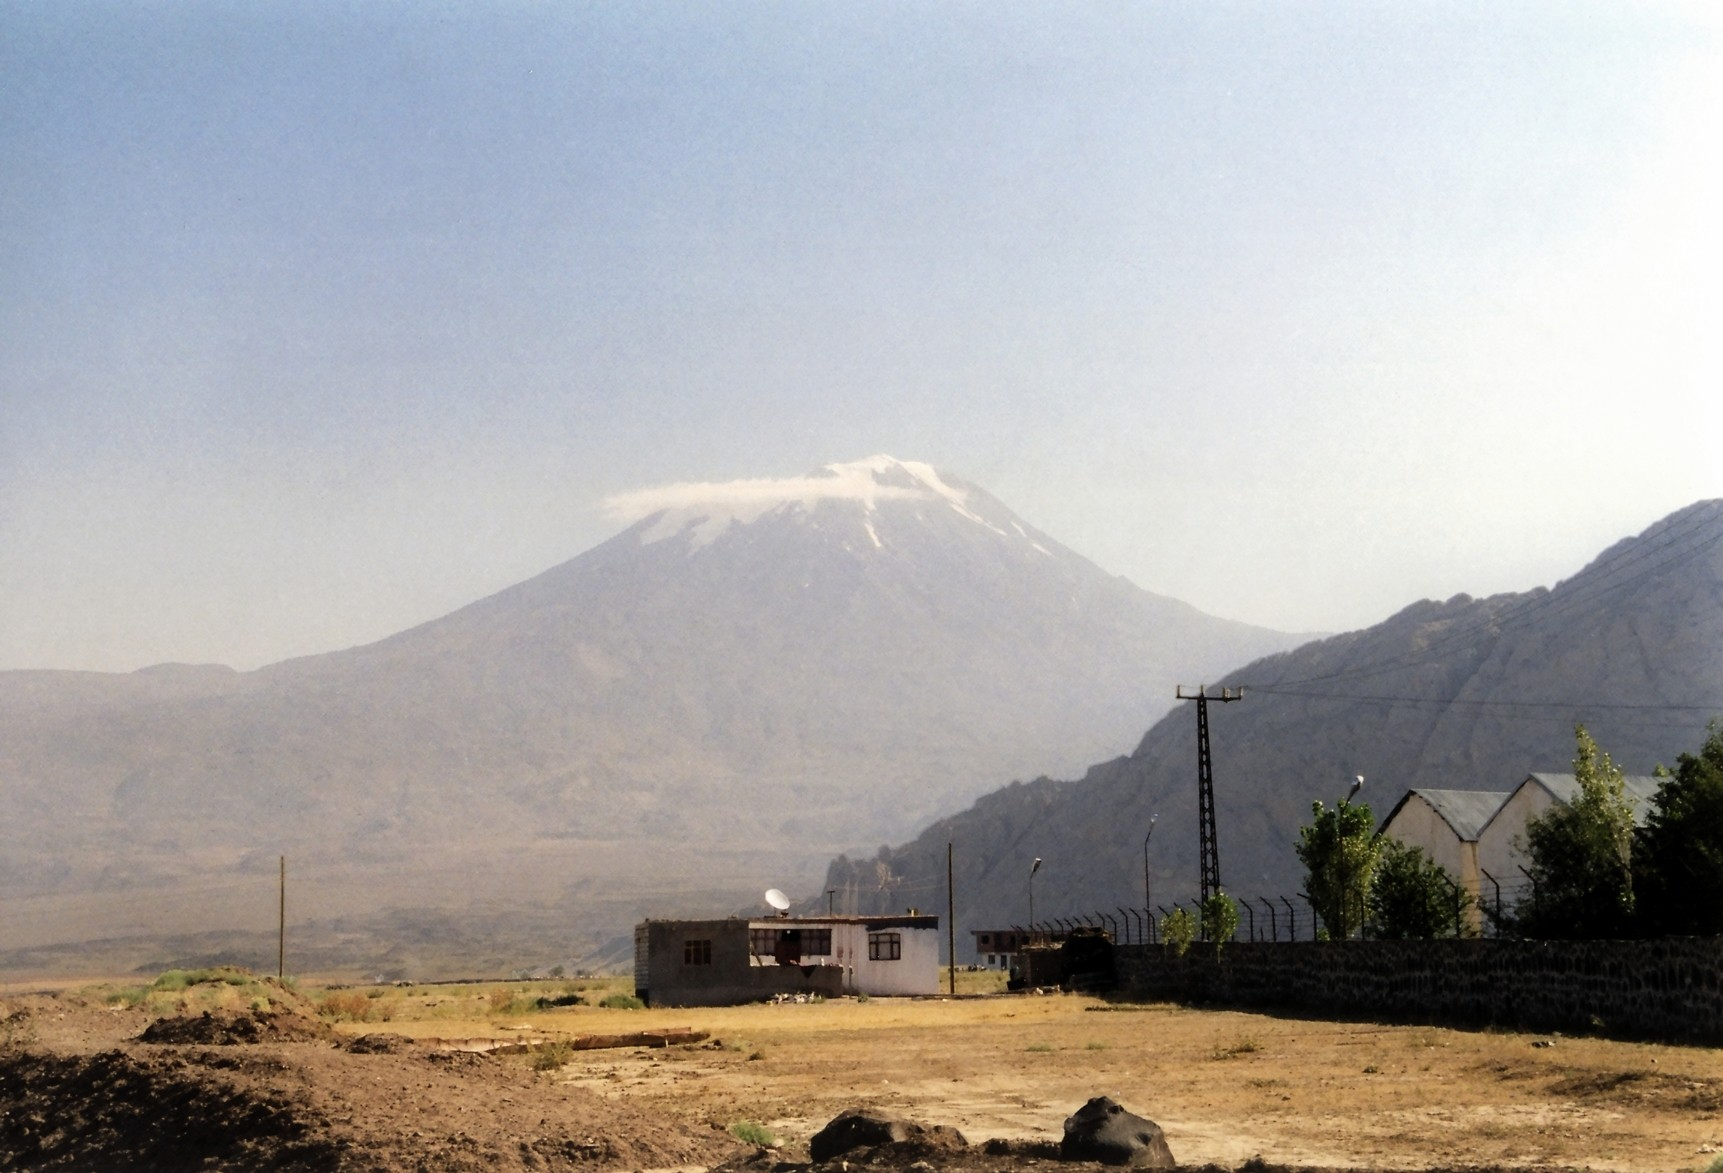 Mount Ararat from east of Dogubeyazit, Turkey